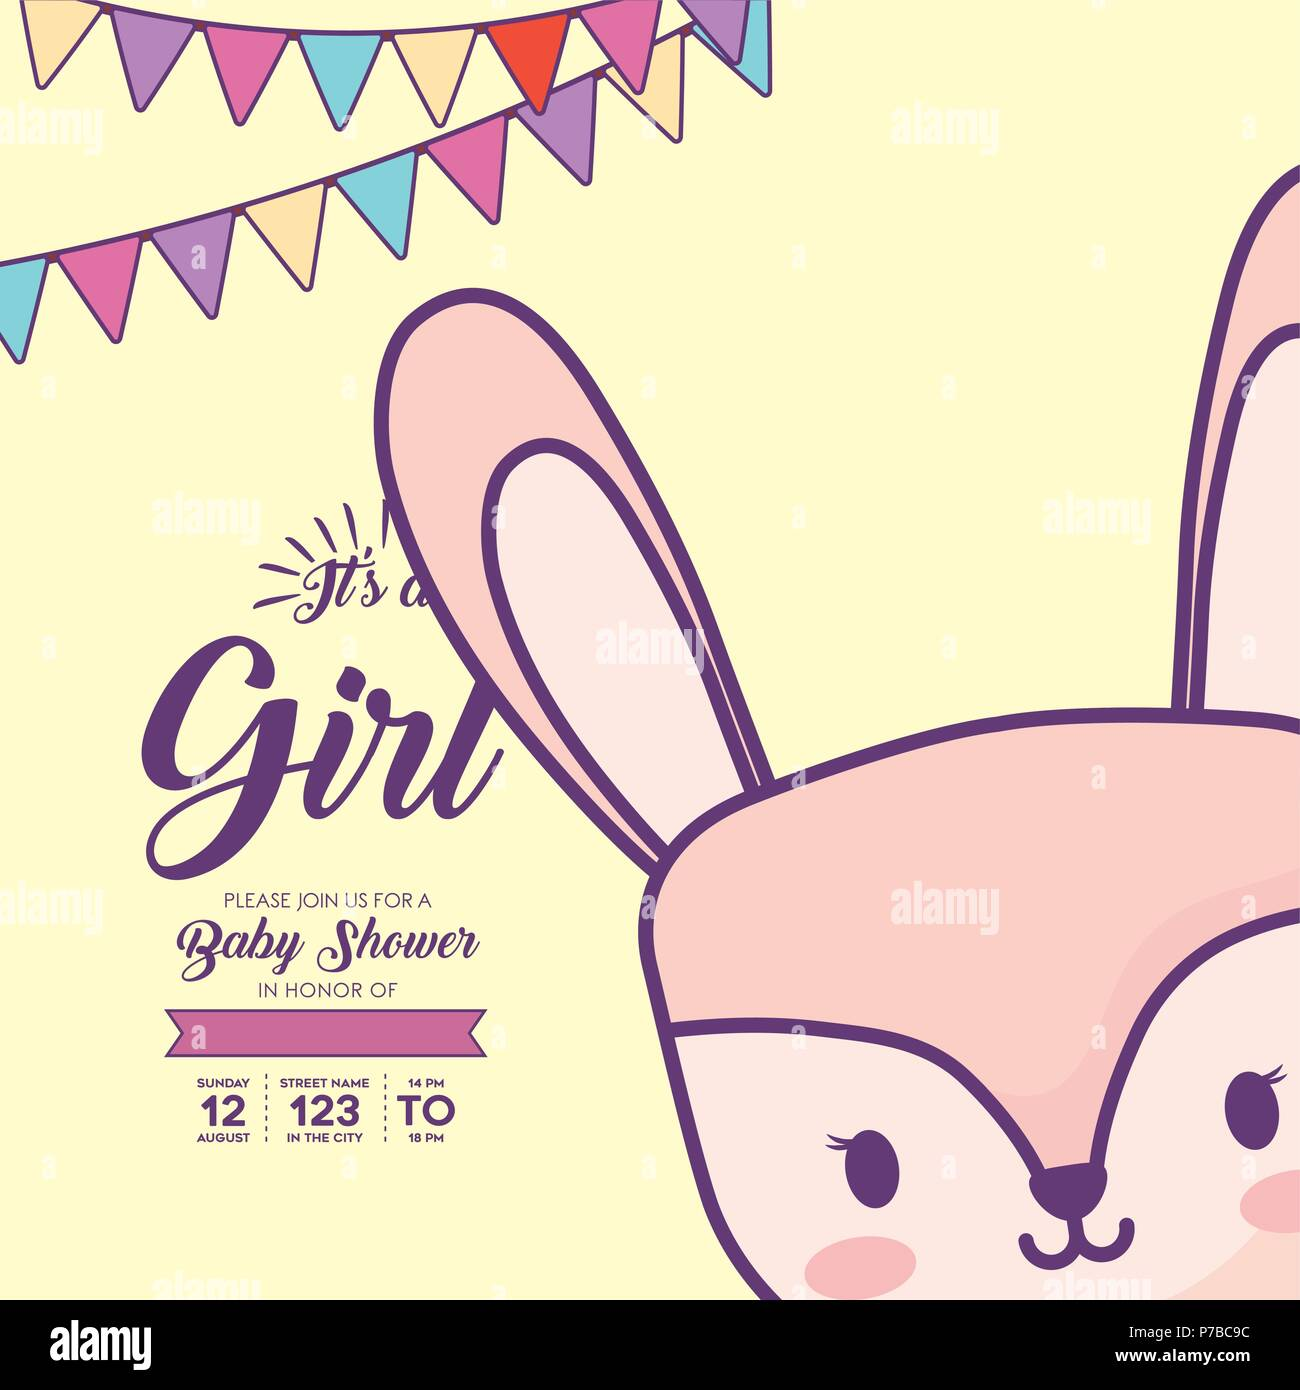 6c64920c38e Ist a girl baby shower invitation with decorative pennants and cute rabbit  icon over yellow background